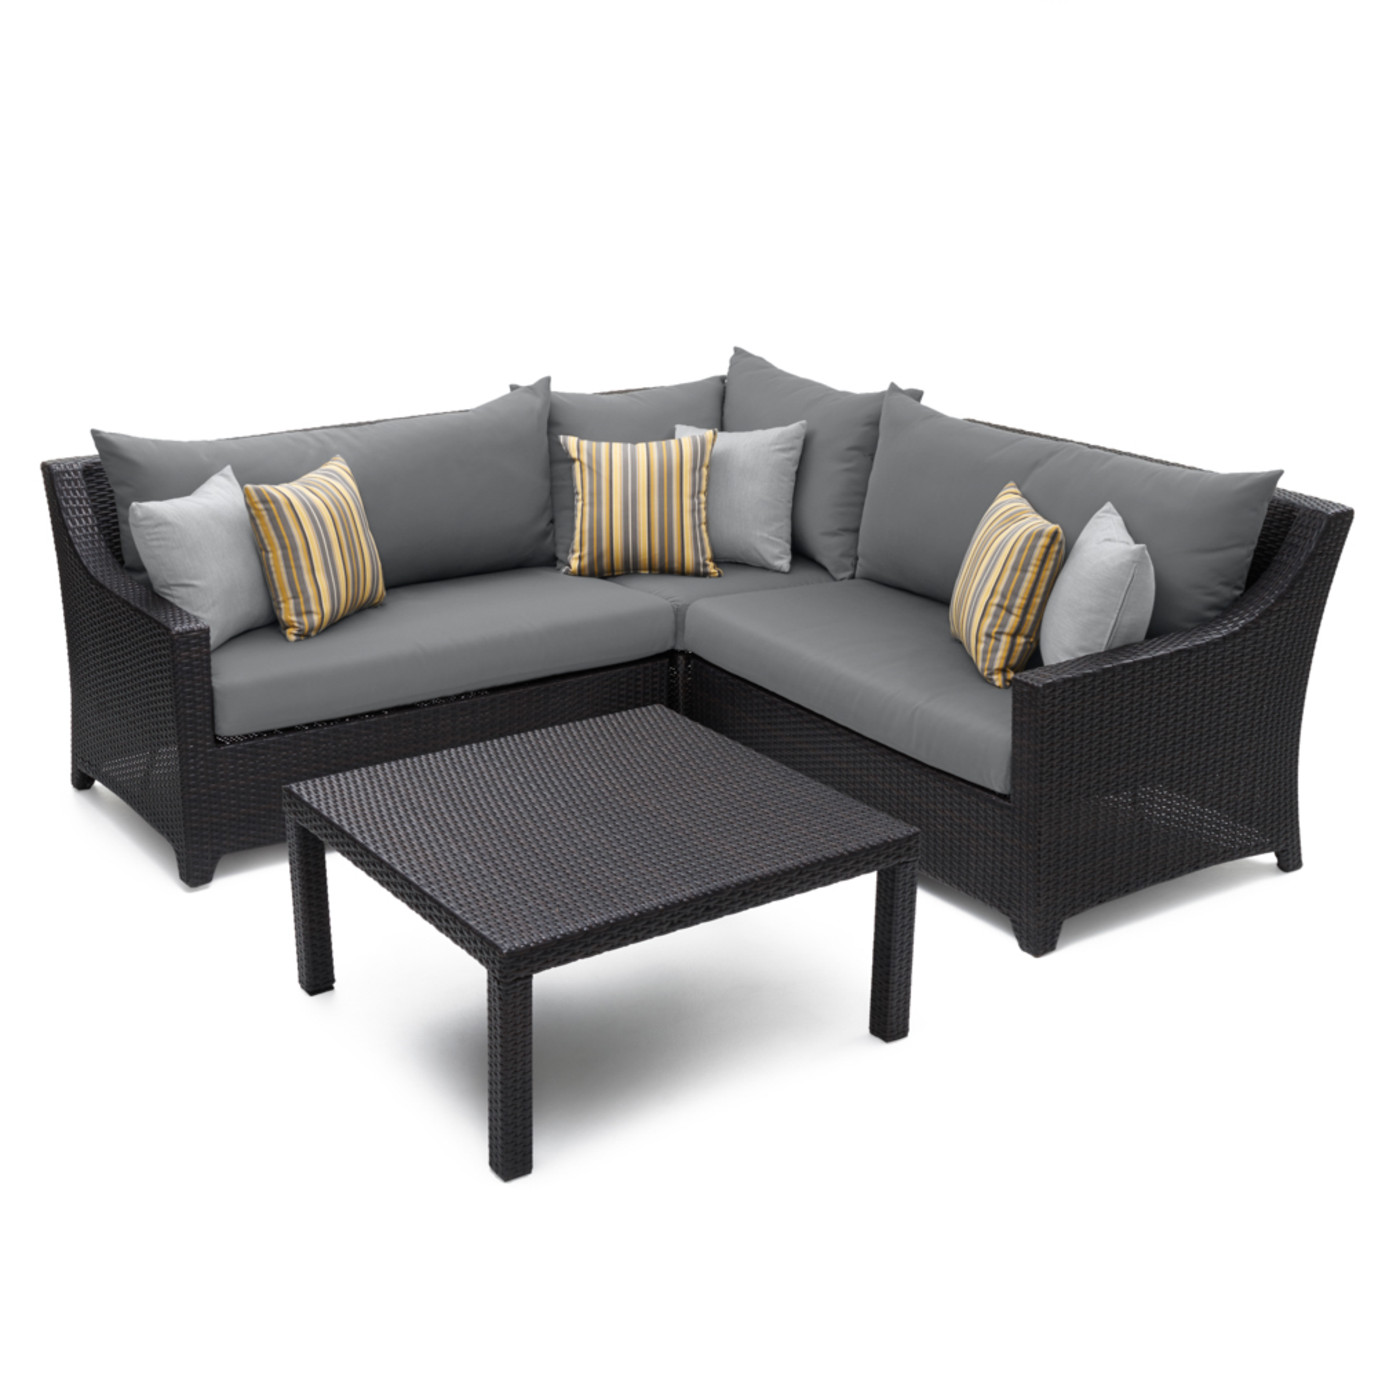 Deco™ 4pc Sectional and Table - Charcoal Gray